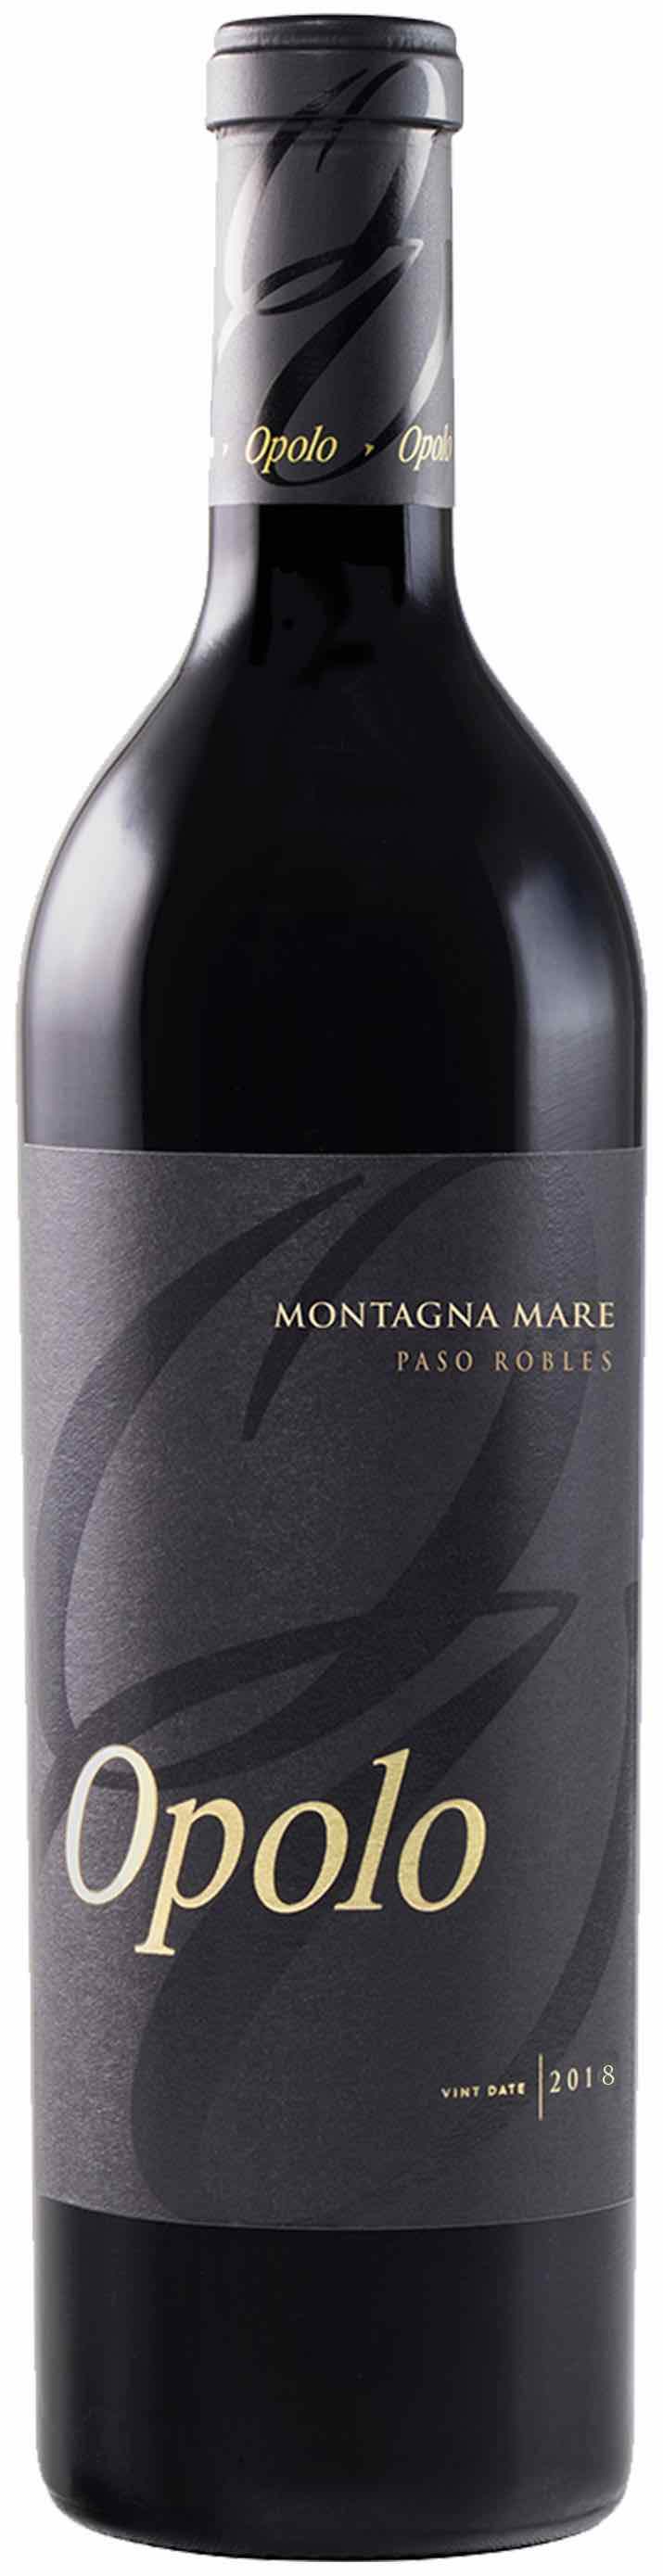 Product Image for 2019 Montagna Mare